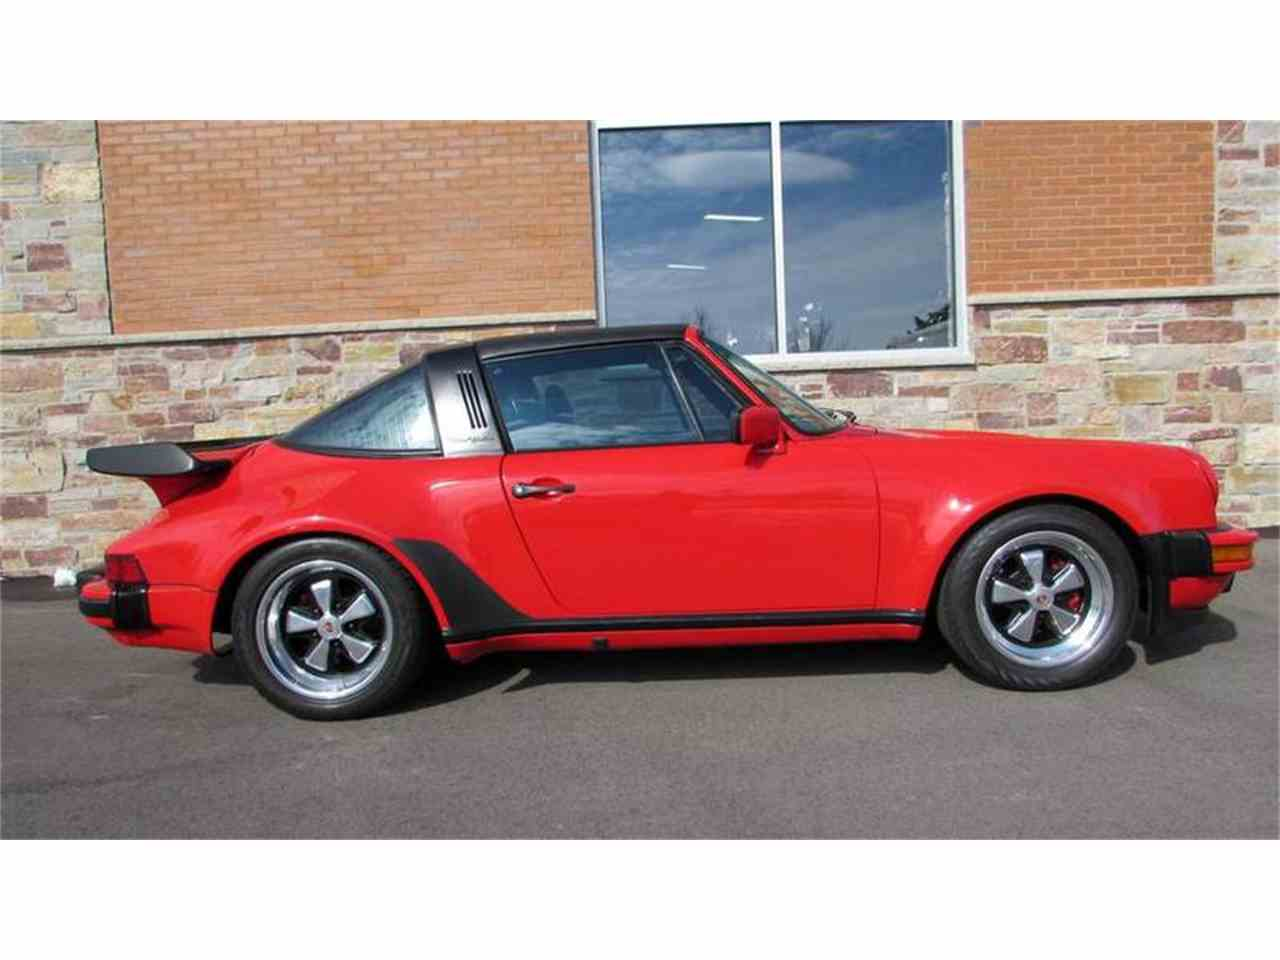 Large Picture of 1986 Porsche 911 located in Wisconsin Auction Vehicle Offered by Jamie's 50/50 Motorsports - MBV8